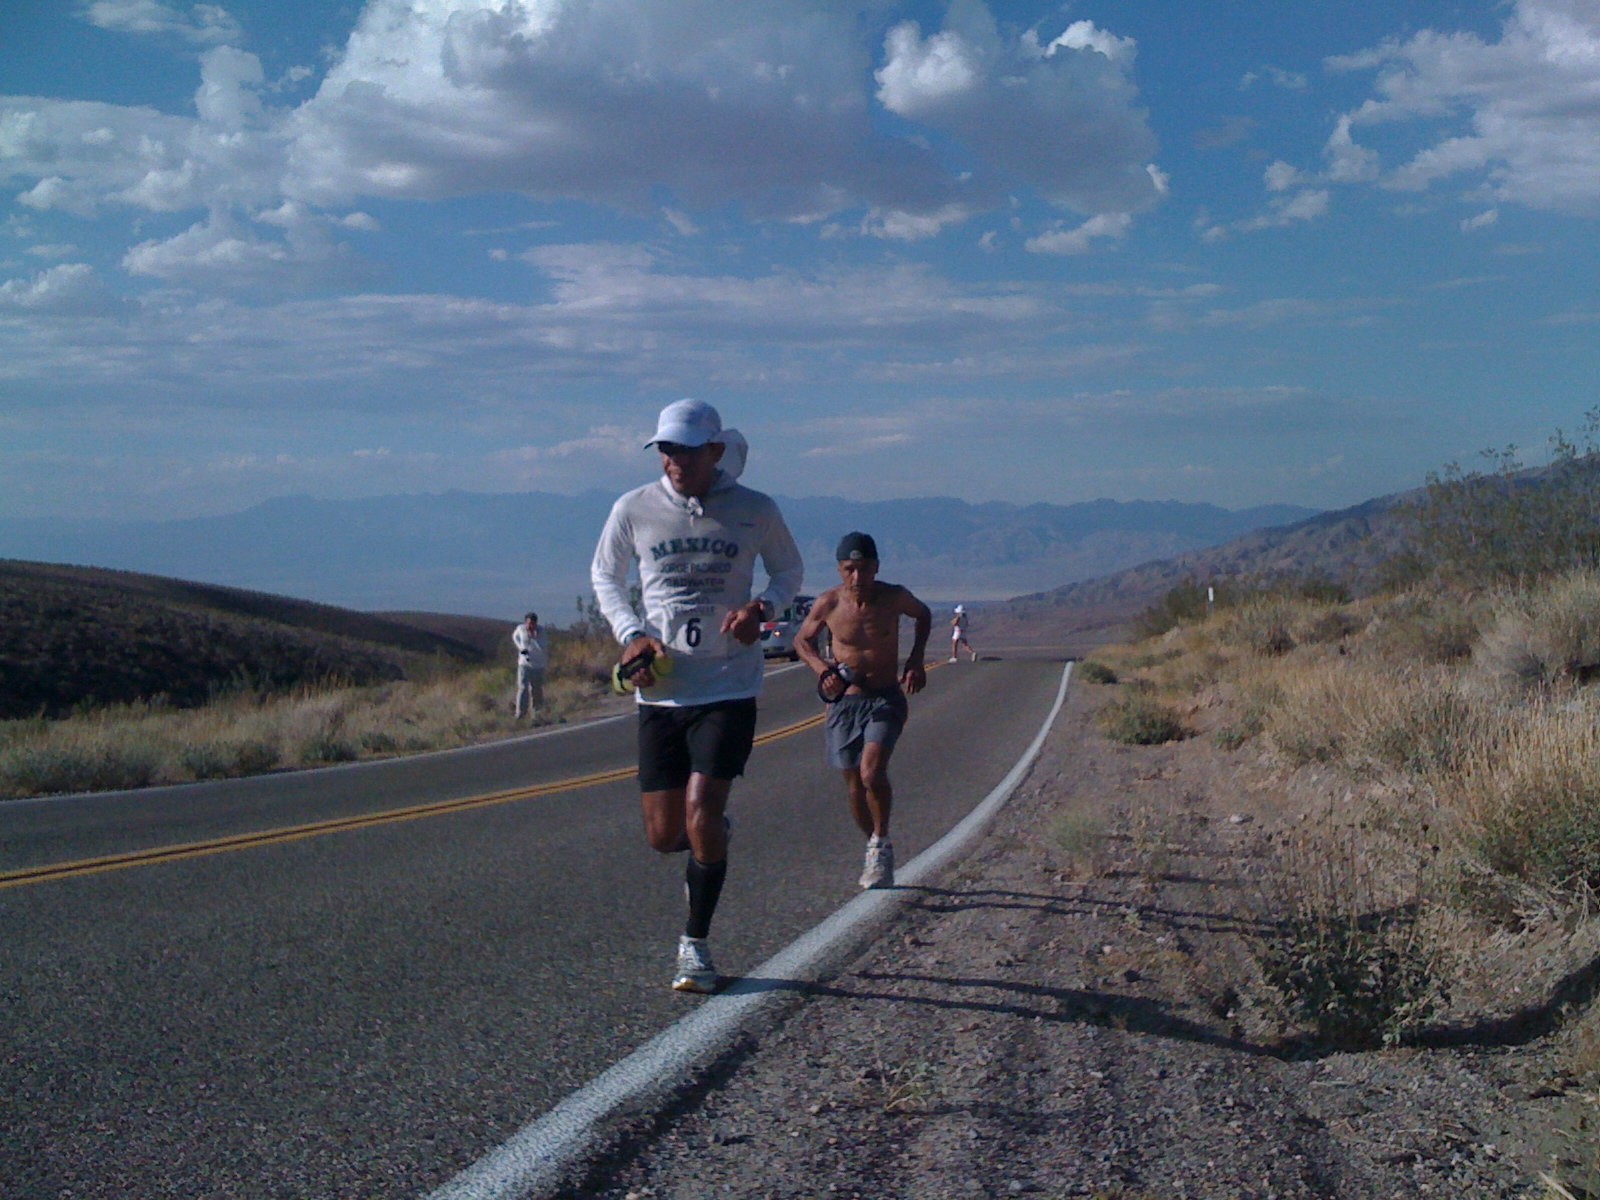 Los Angeles native and past champion Jorge Pacheco running up Townes Pass